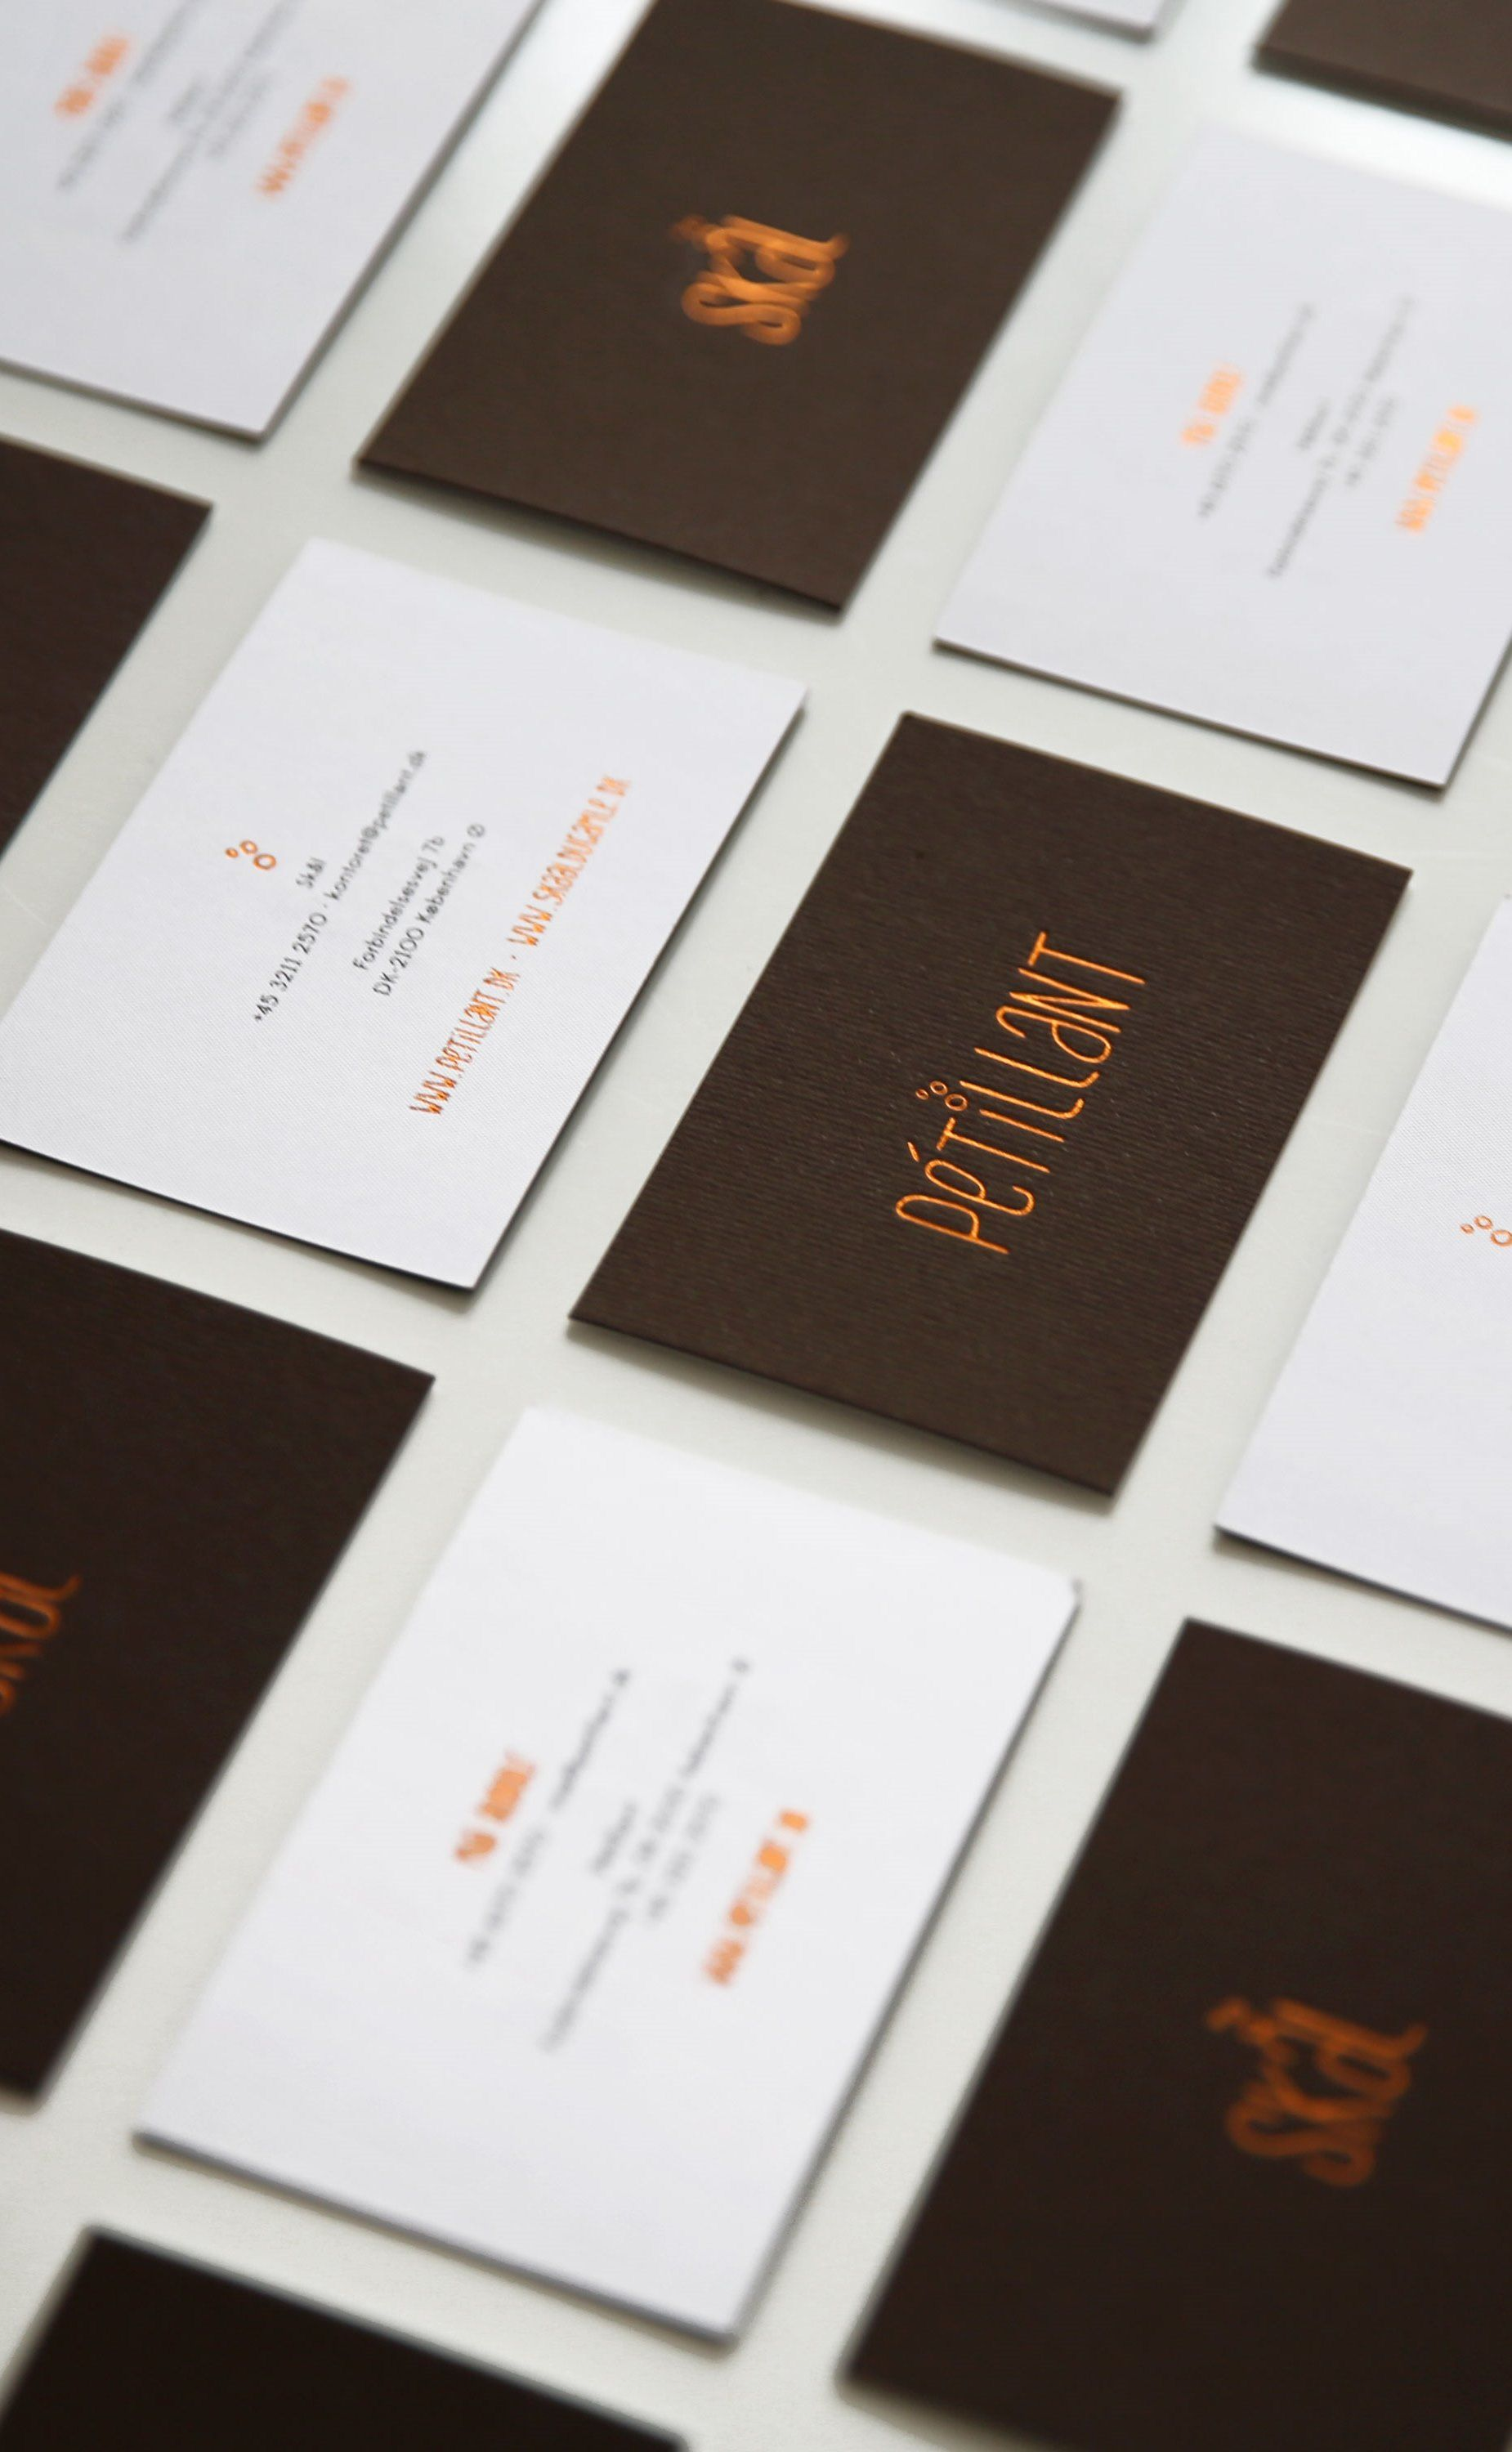 business cards with hand made typeface designed for wine brand